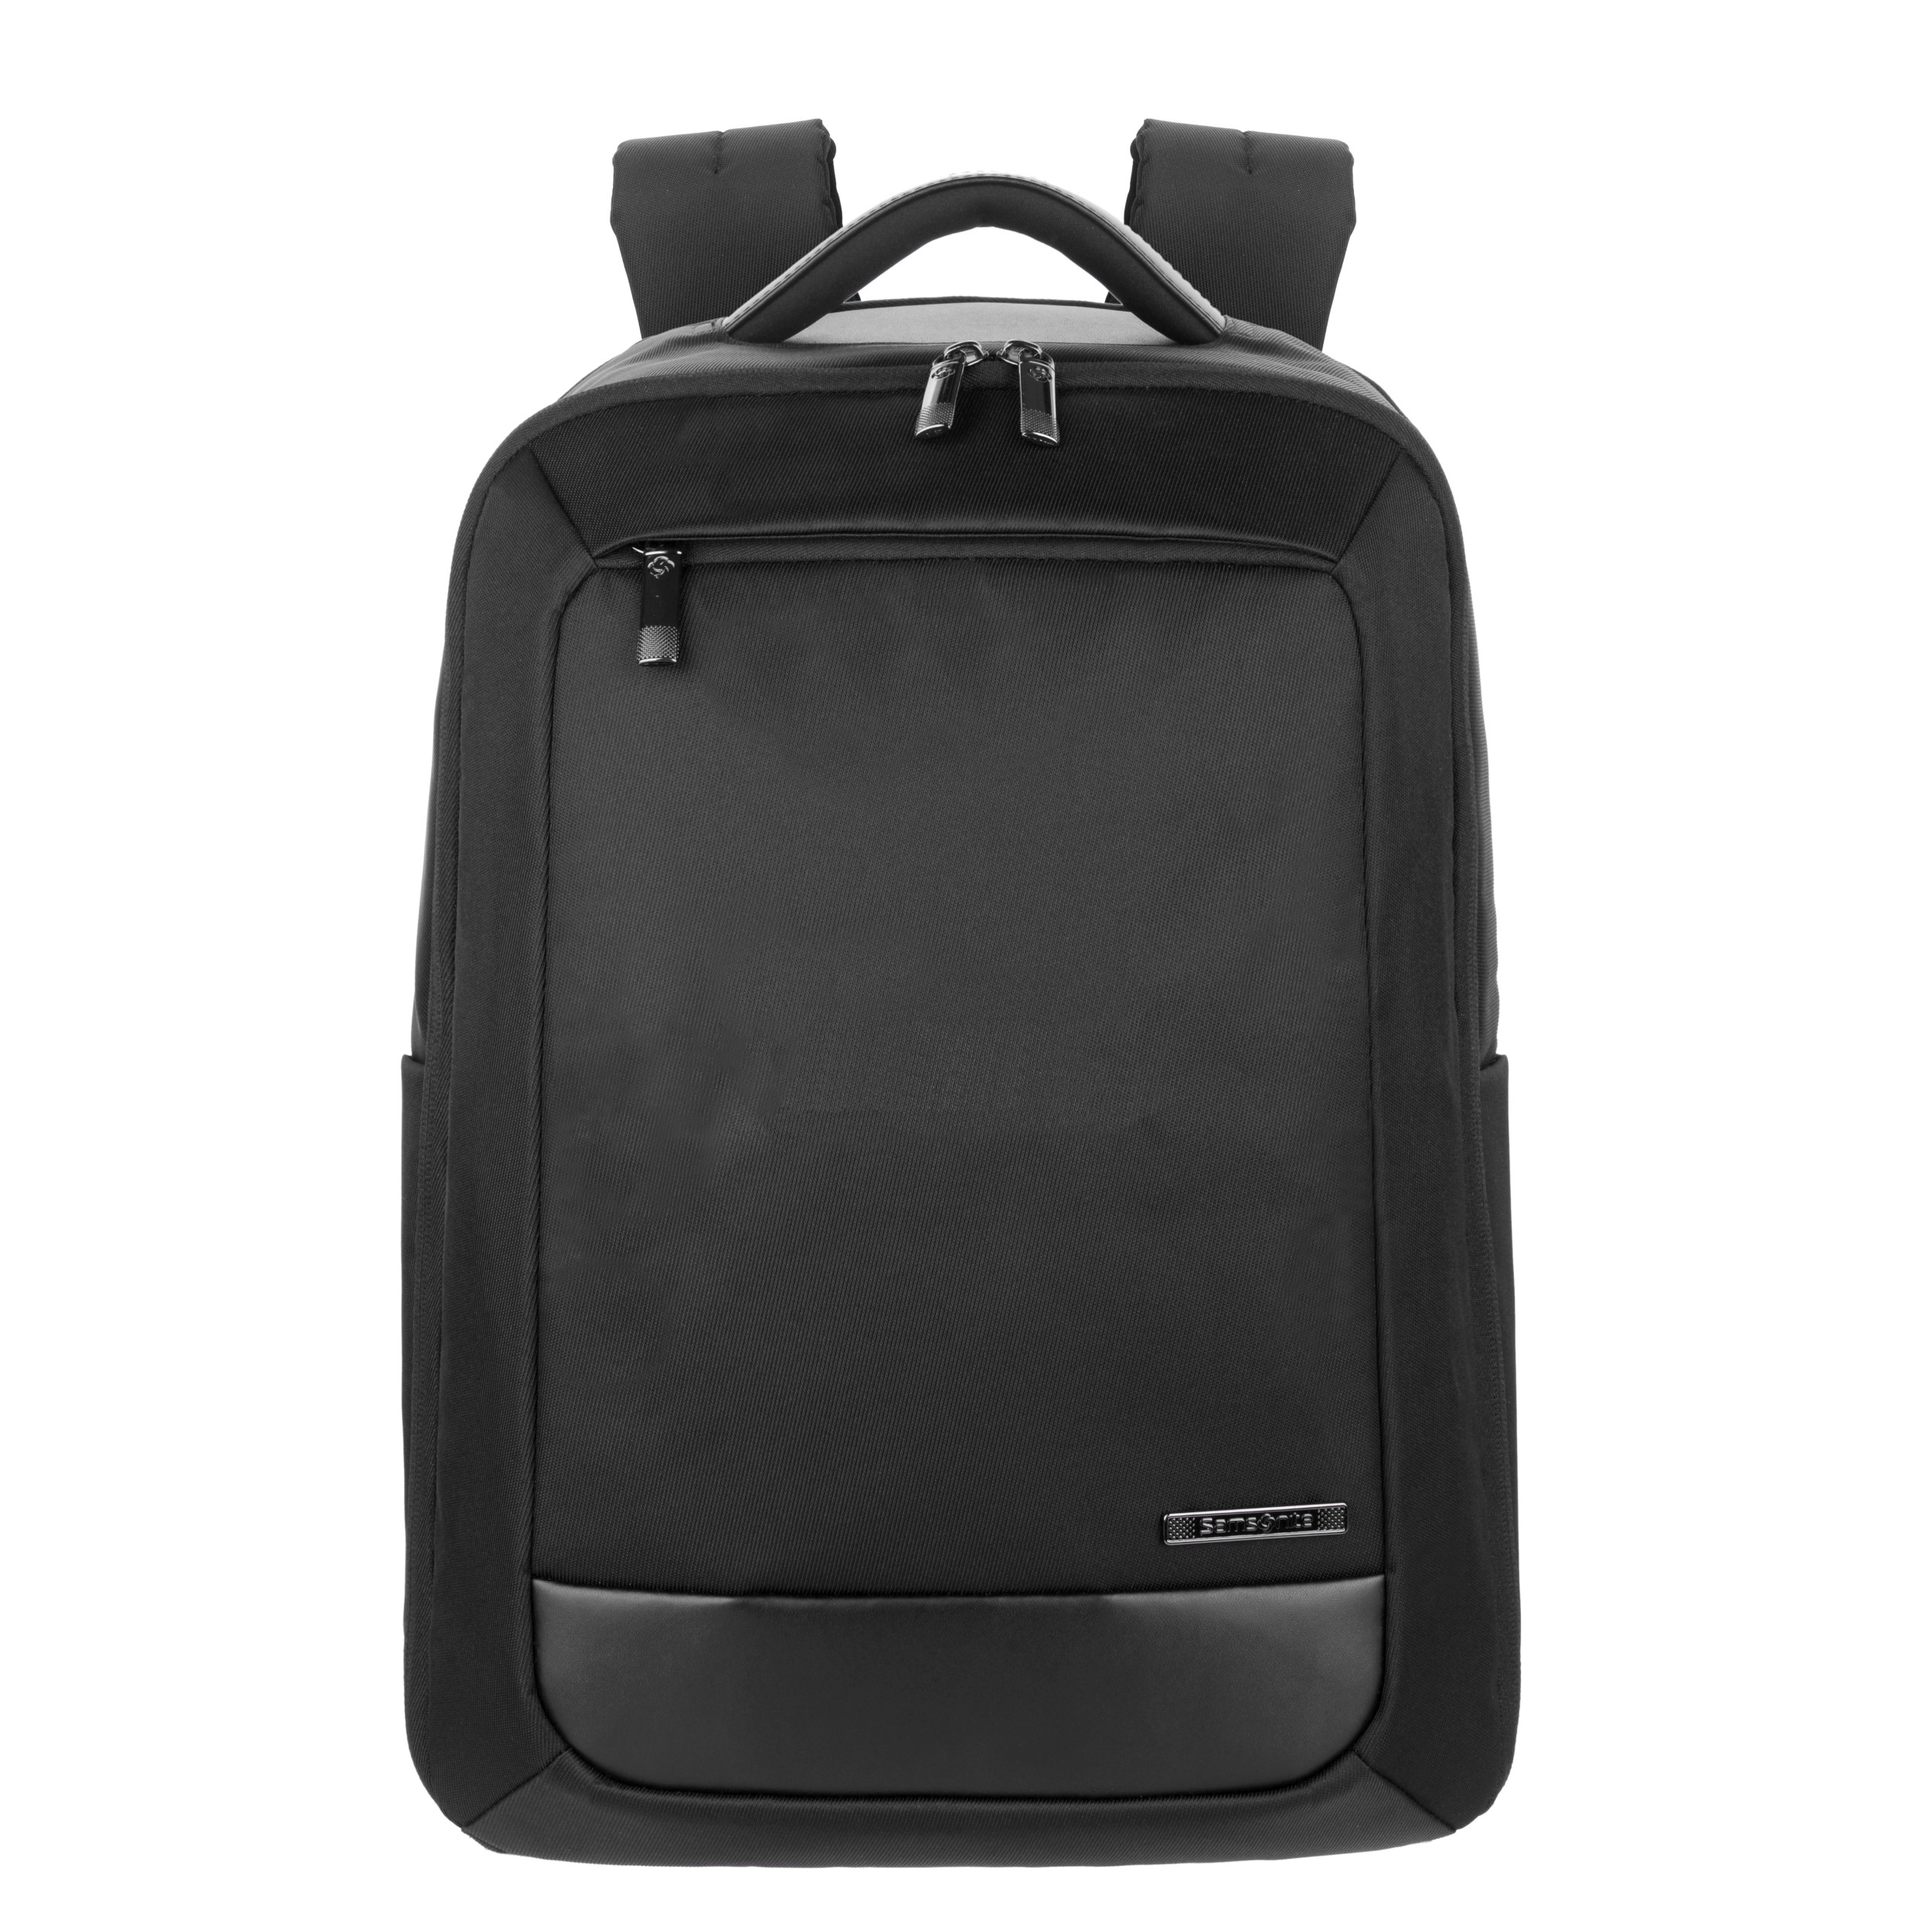 Samsonite 100012-001 - Executive Computer Backpack